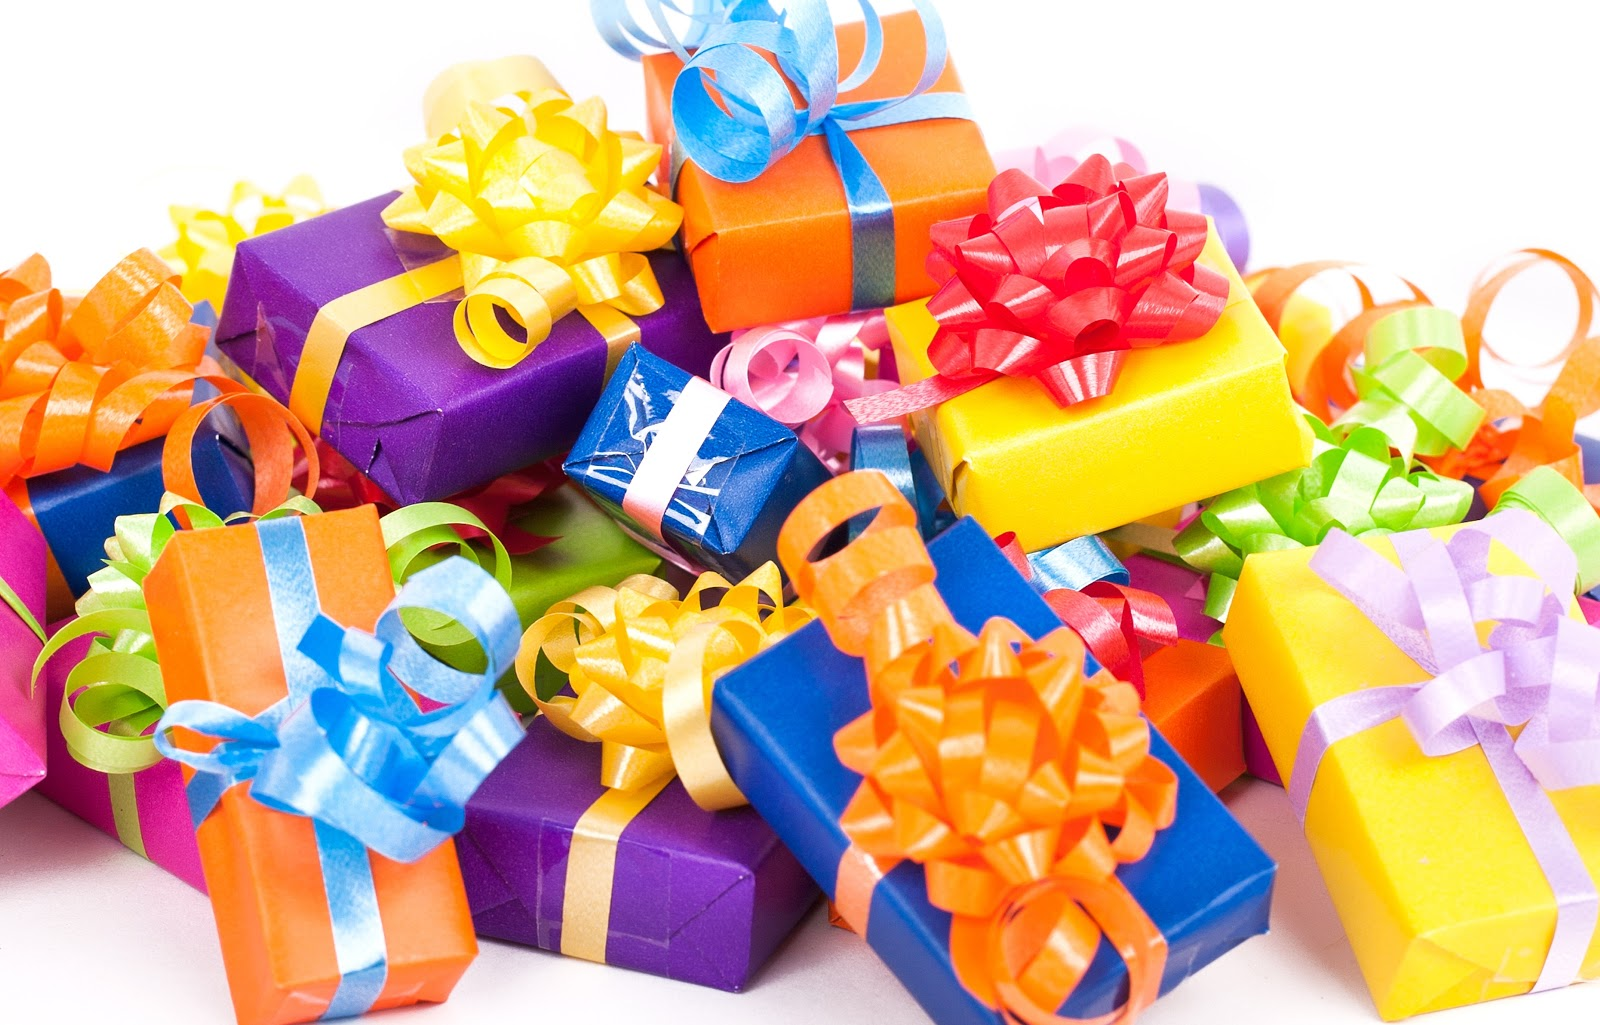 Easy ways to create eid gift baskets a content box eid is not only a holy festival for muslims but also a social occasion to cherish your relationships eid is a very lively occasion in pakistan specifically negle Choice Image